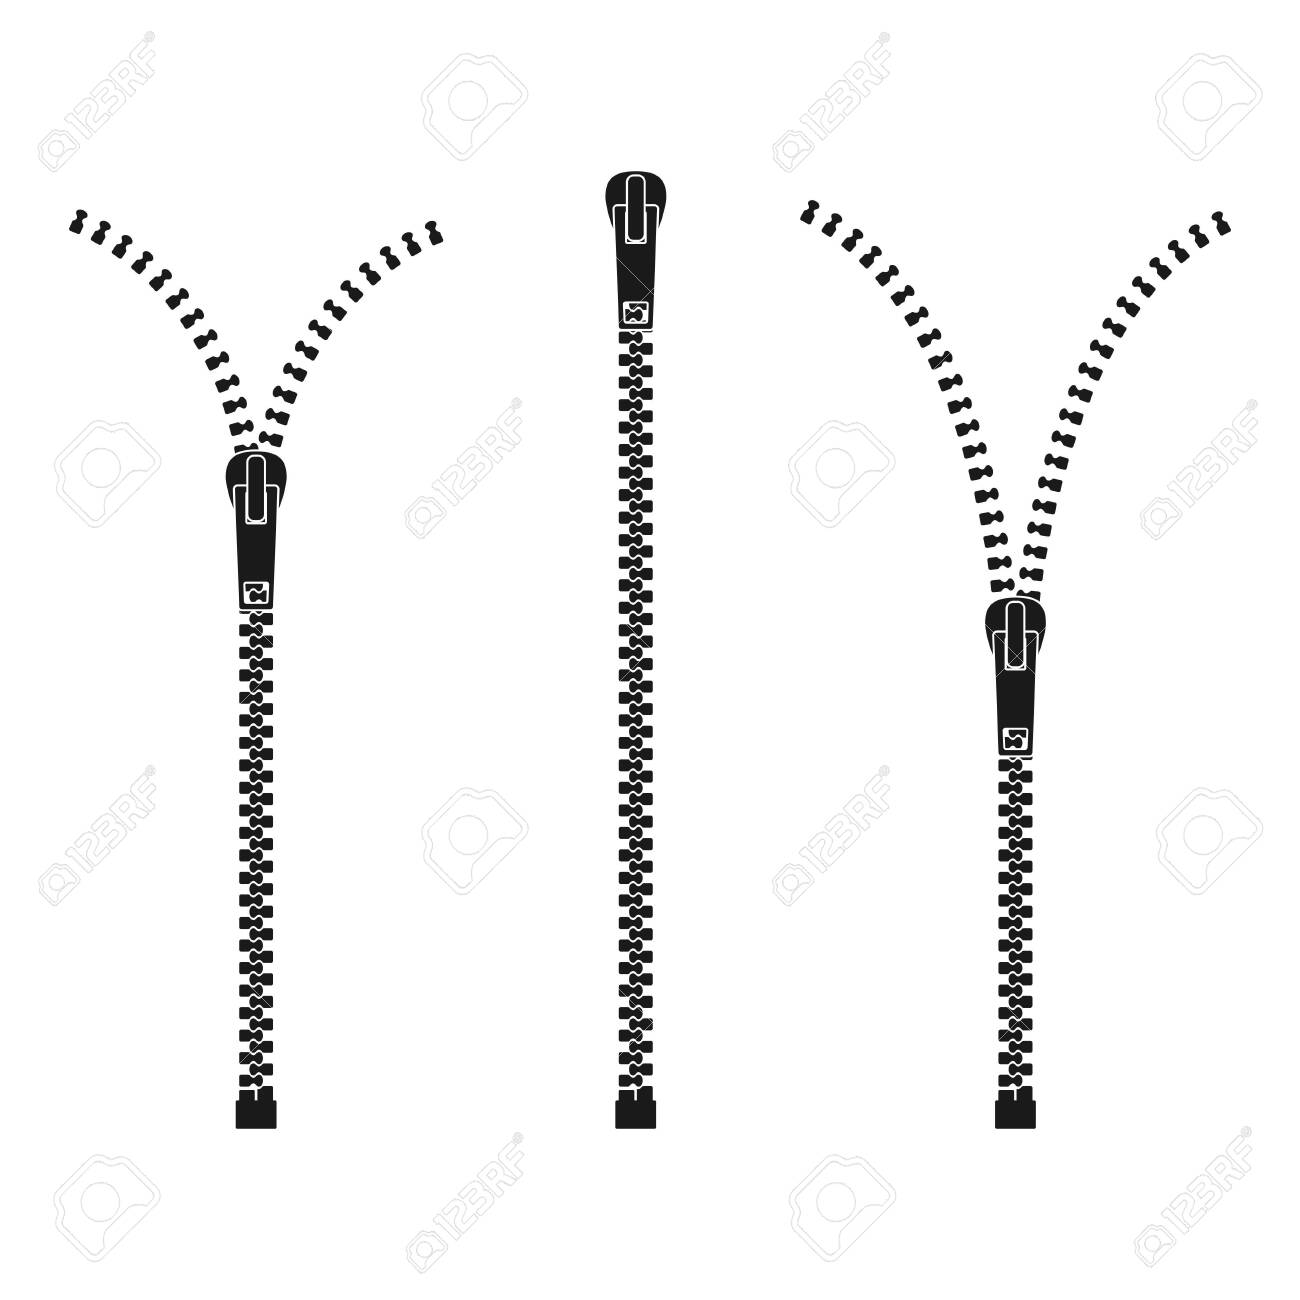 Zipper isolated on white background, Clothes zips, split cloth pulling zip, open or unzipped and close or zipper metal zip set. Vector illustration - 151965000